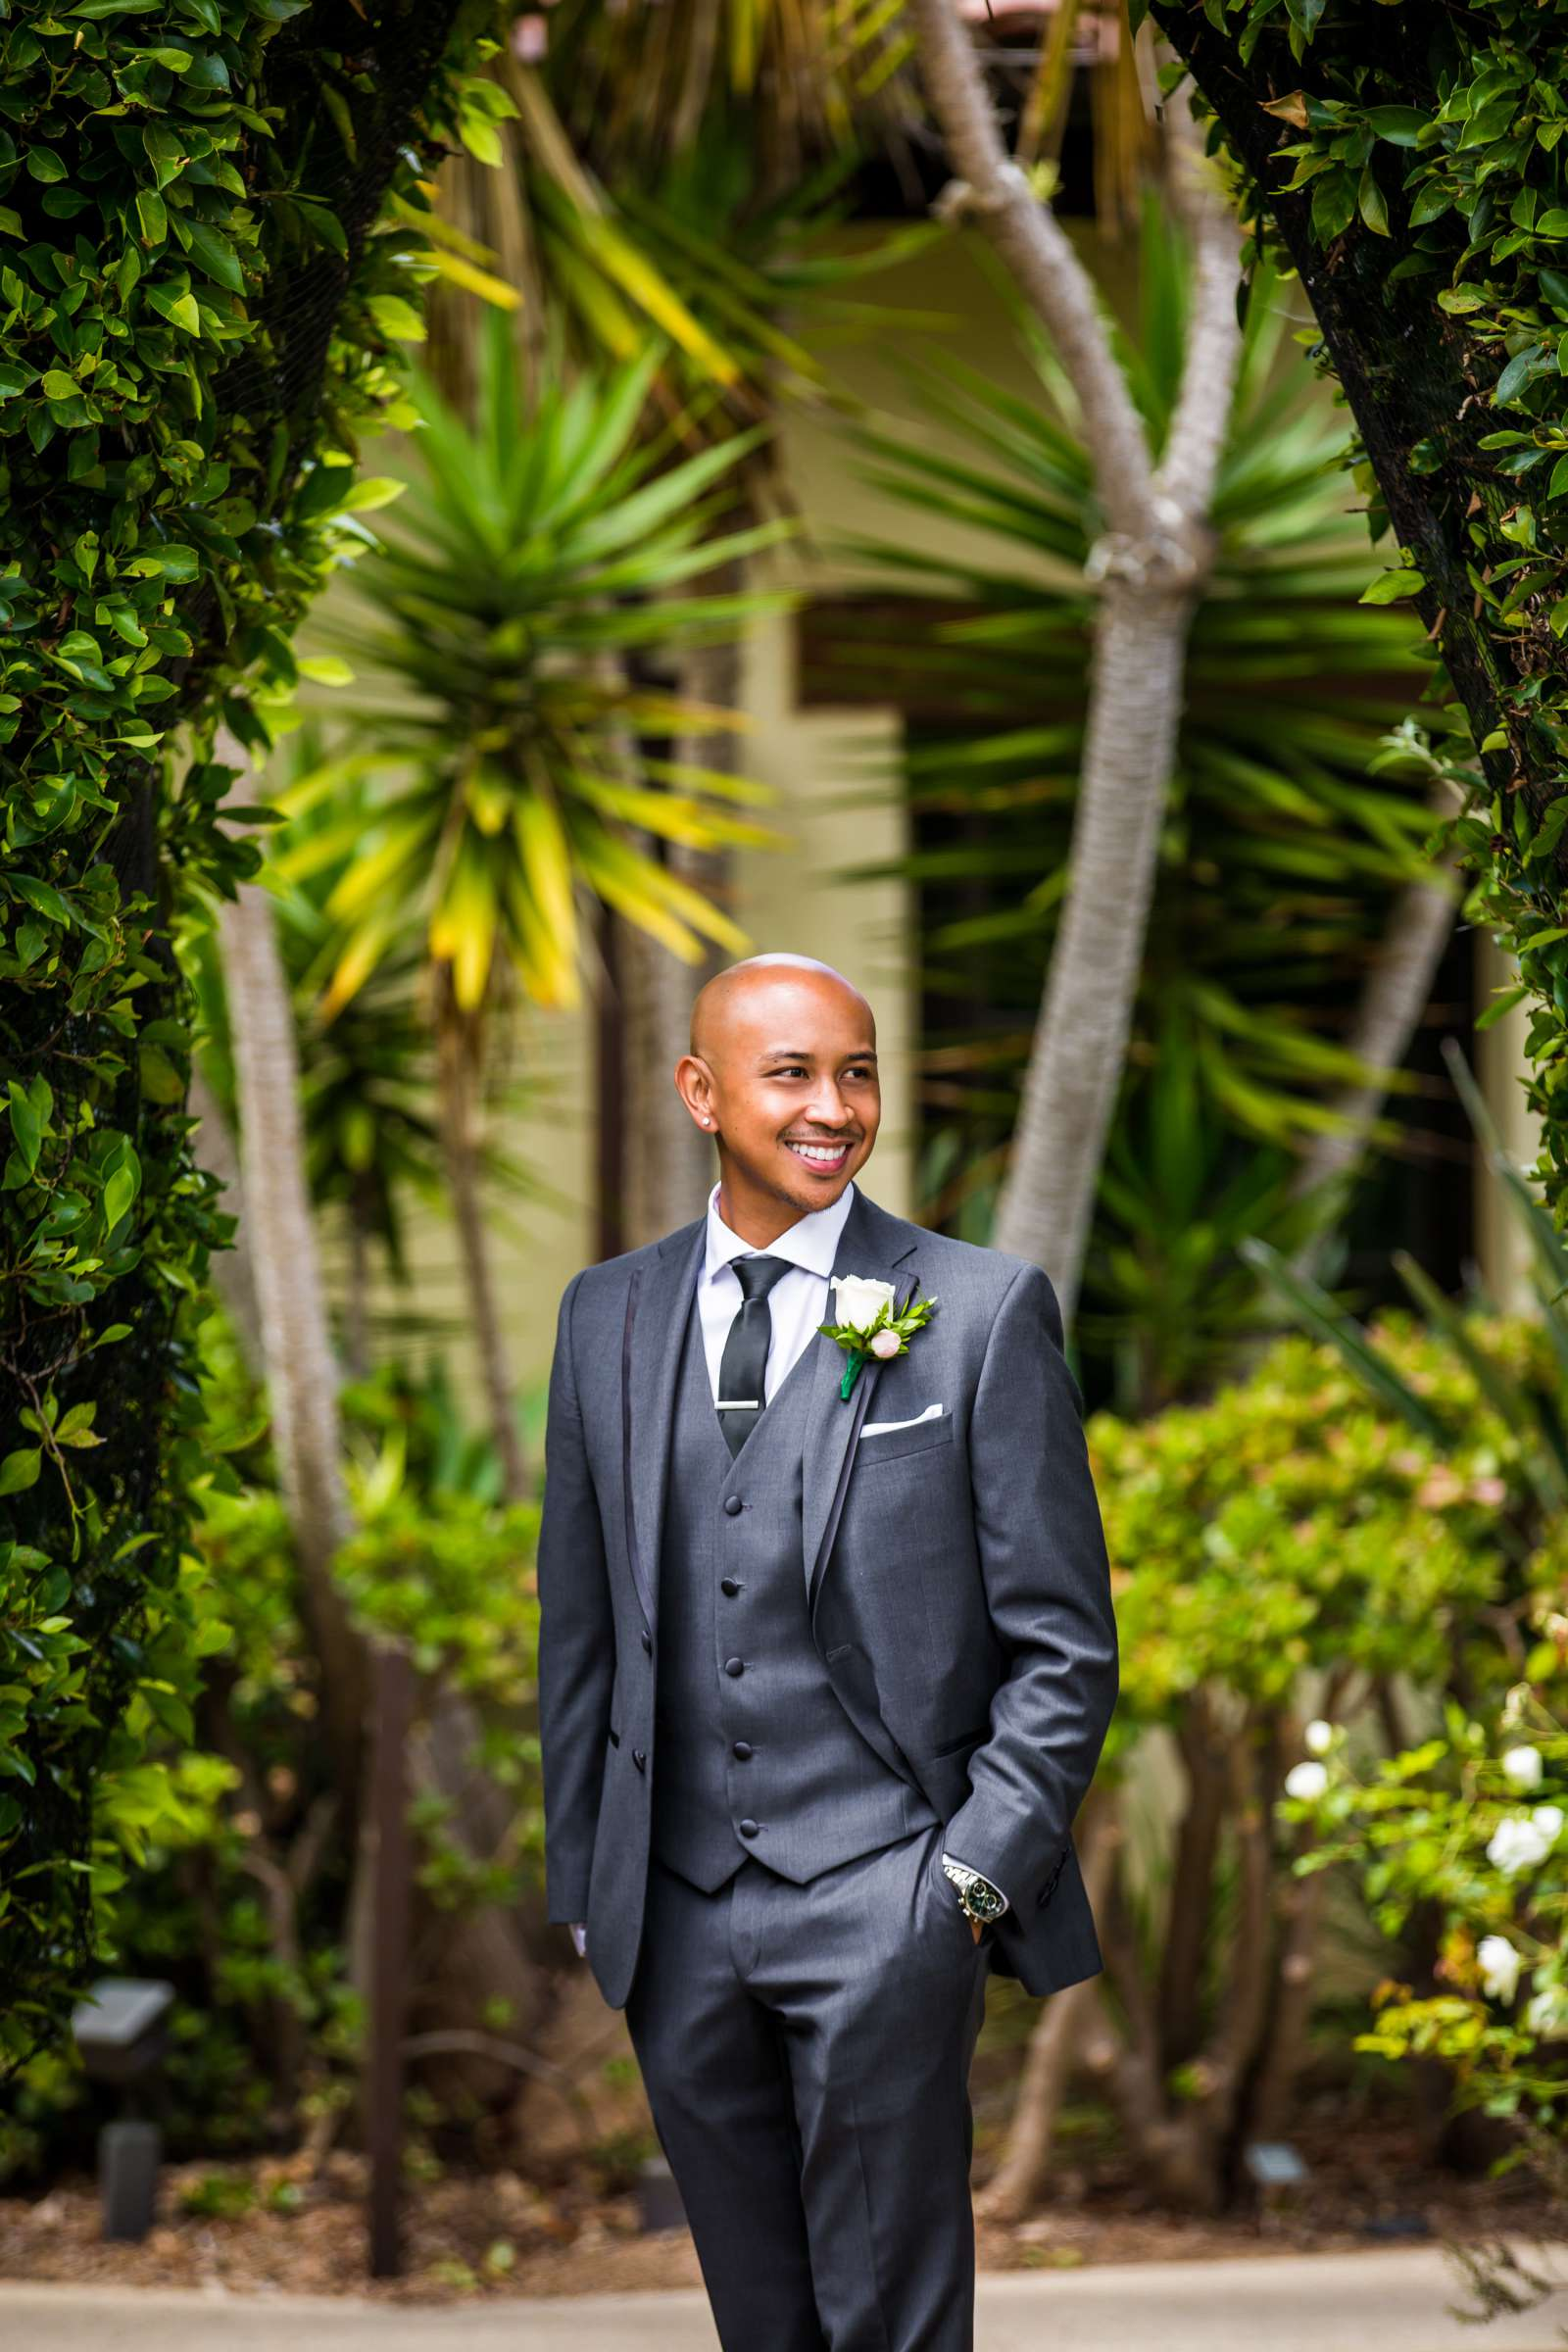 Scripps Seaside Forum Wedding coordinated by Lavish Weddings, Cindy and Justin Wedding Photo #381788 by True Photography